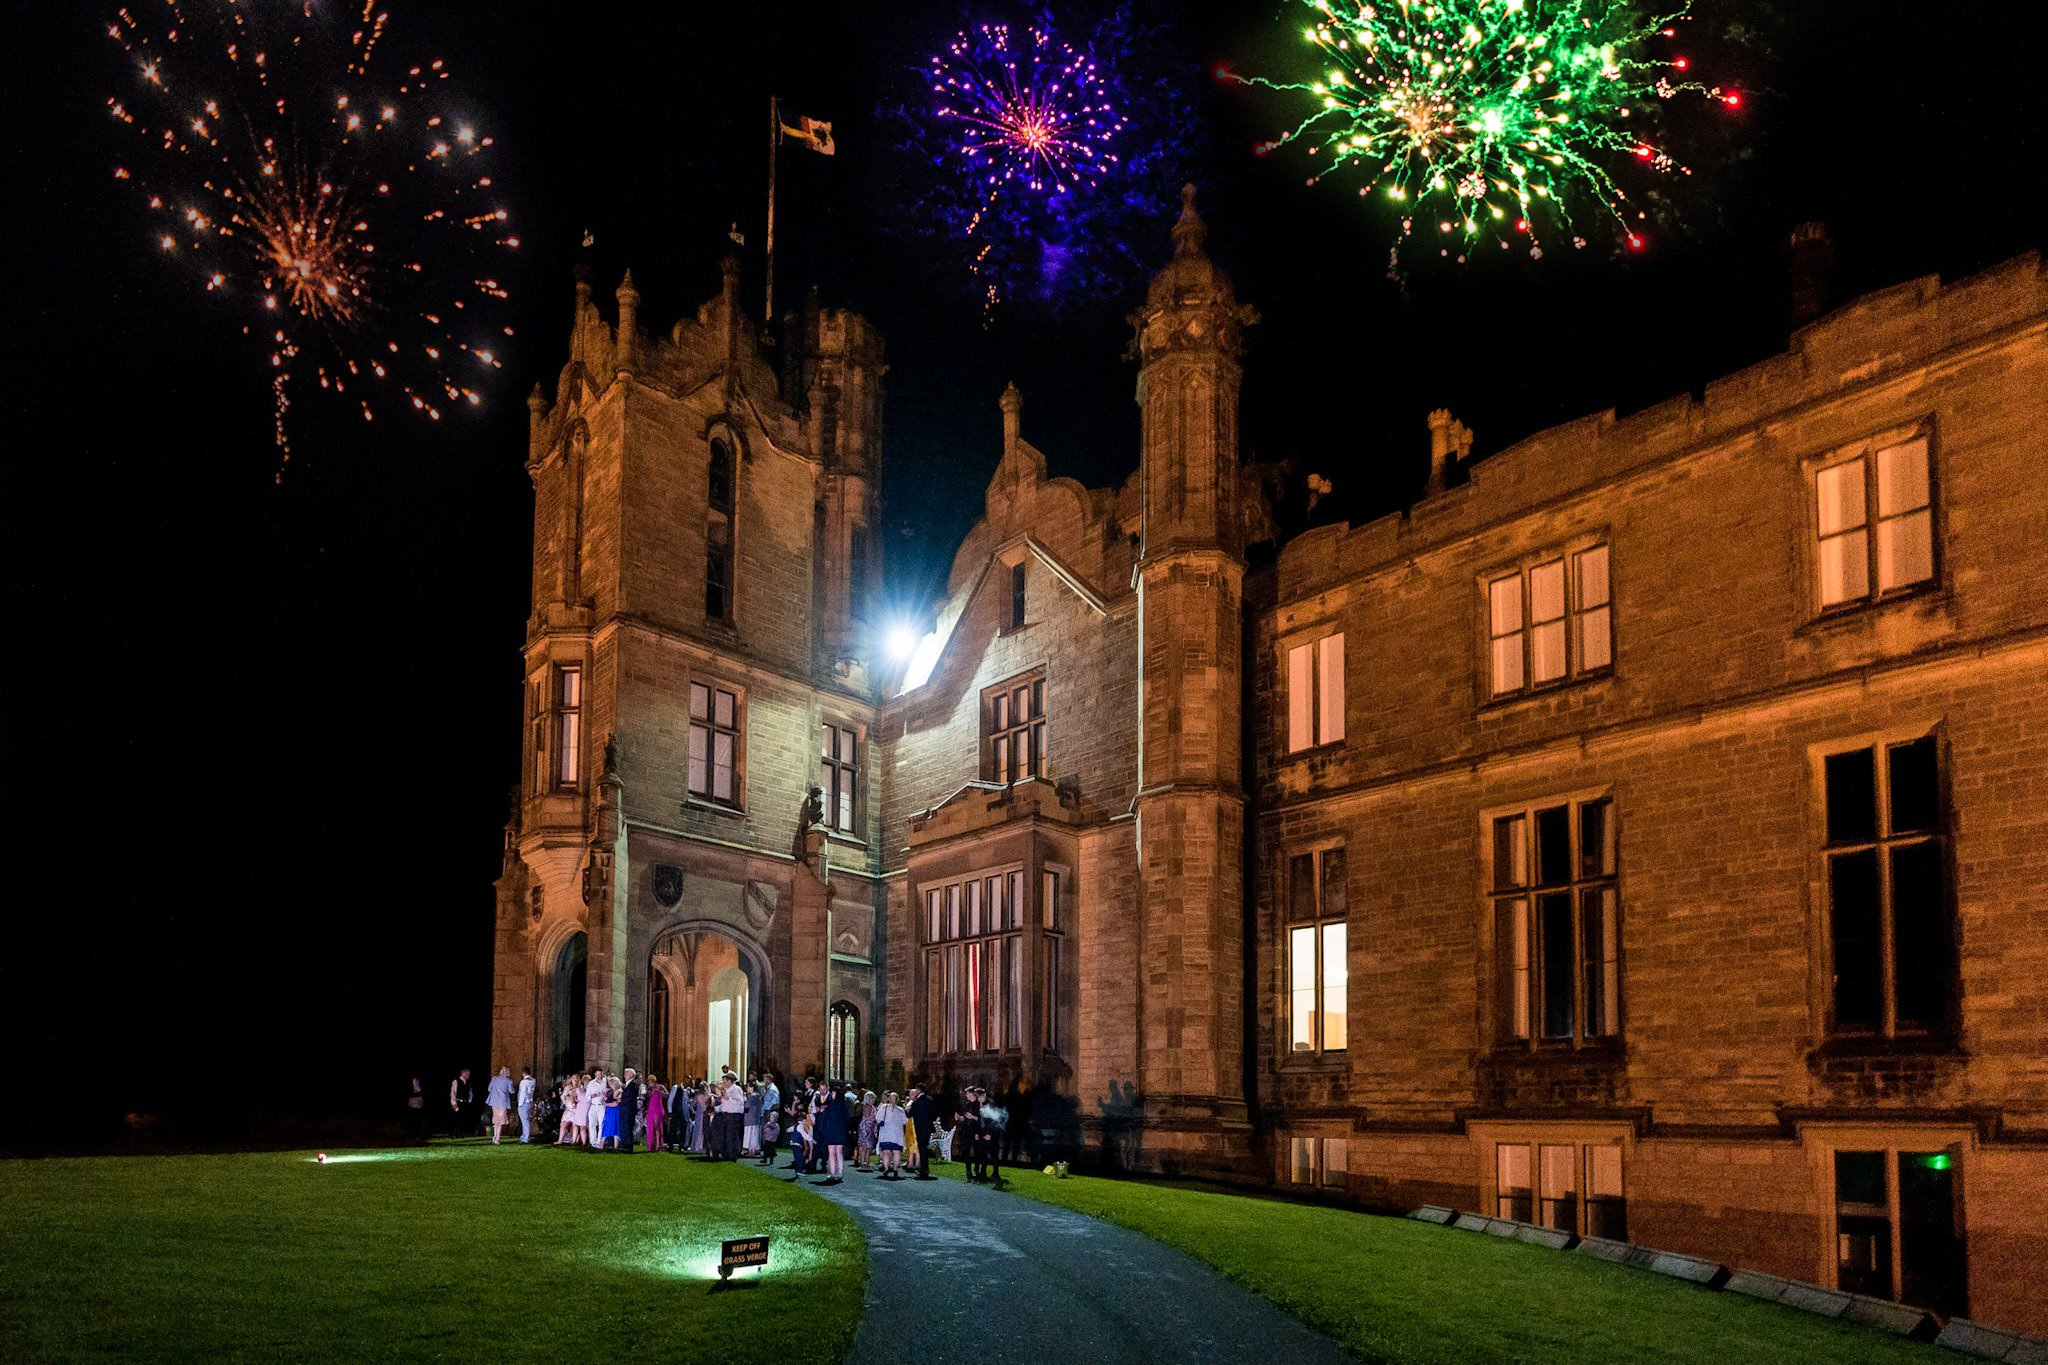 Allerton Castle Knaresborough Hutchinson Weddings Photography fireworks over the castle exploding in style after a magical wedding day